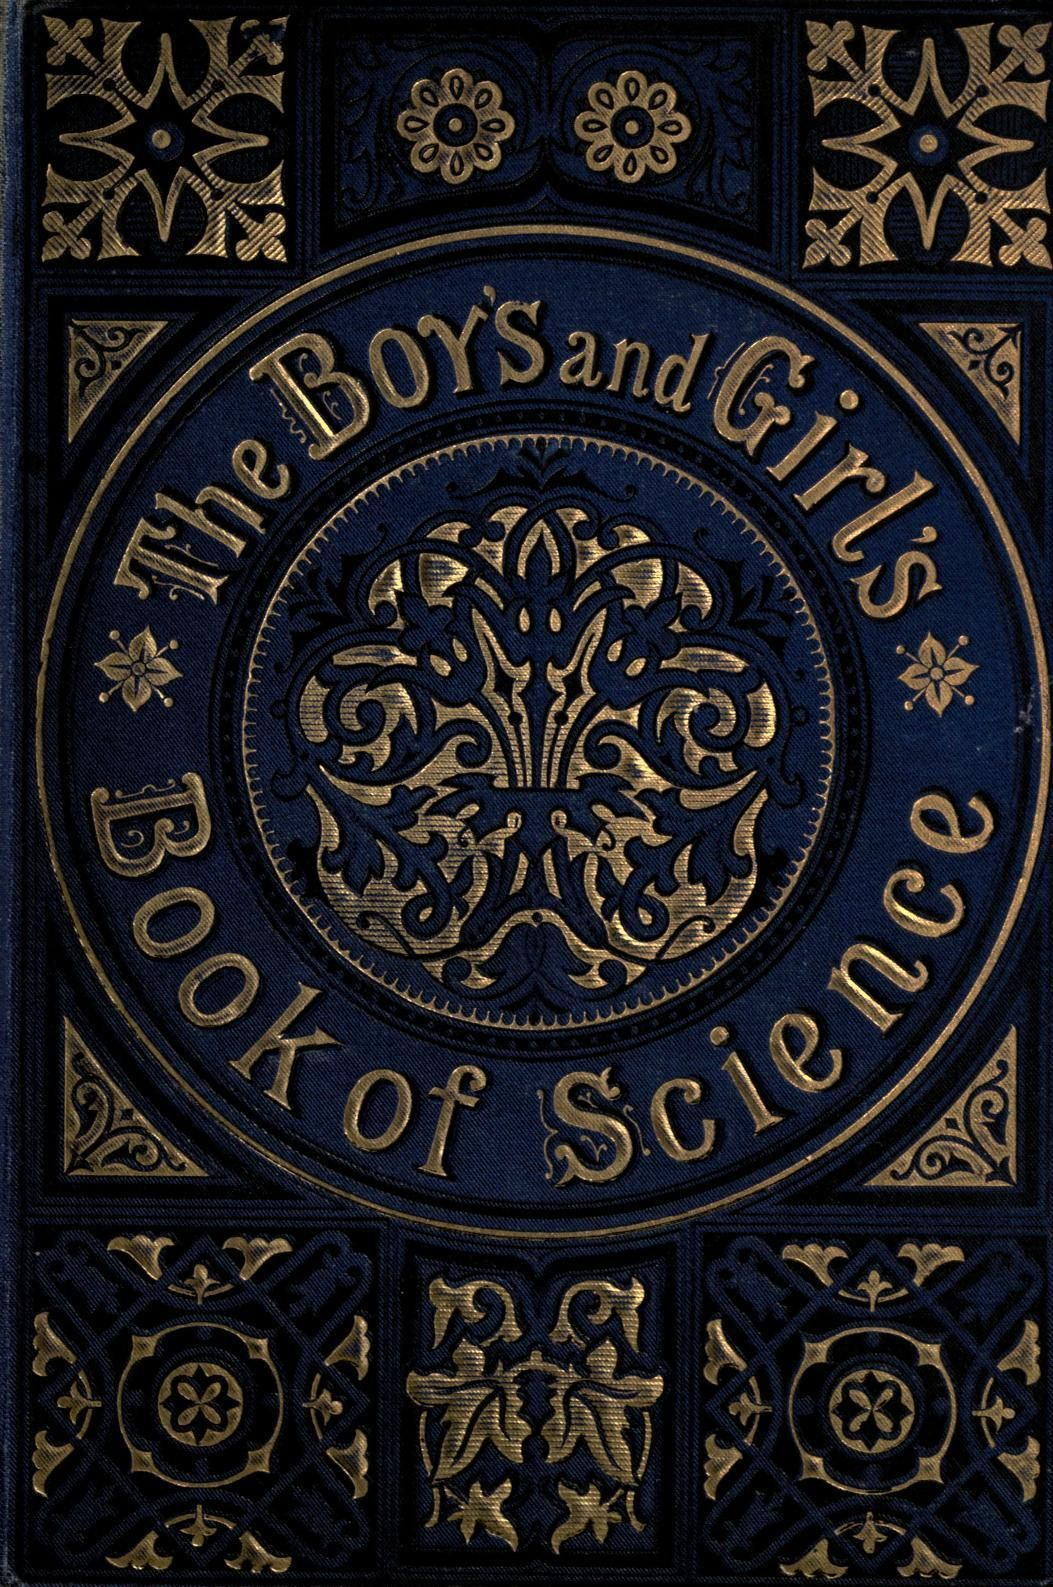 The Boys And Girls Book Of Science 1881 Book Cover Internet Archive 1881 19th Blue Book Century Cover Gilt Gold Nemfrog Science 2020 Nemf